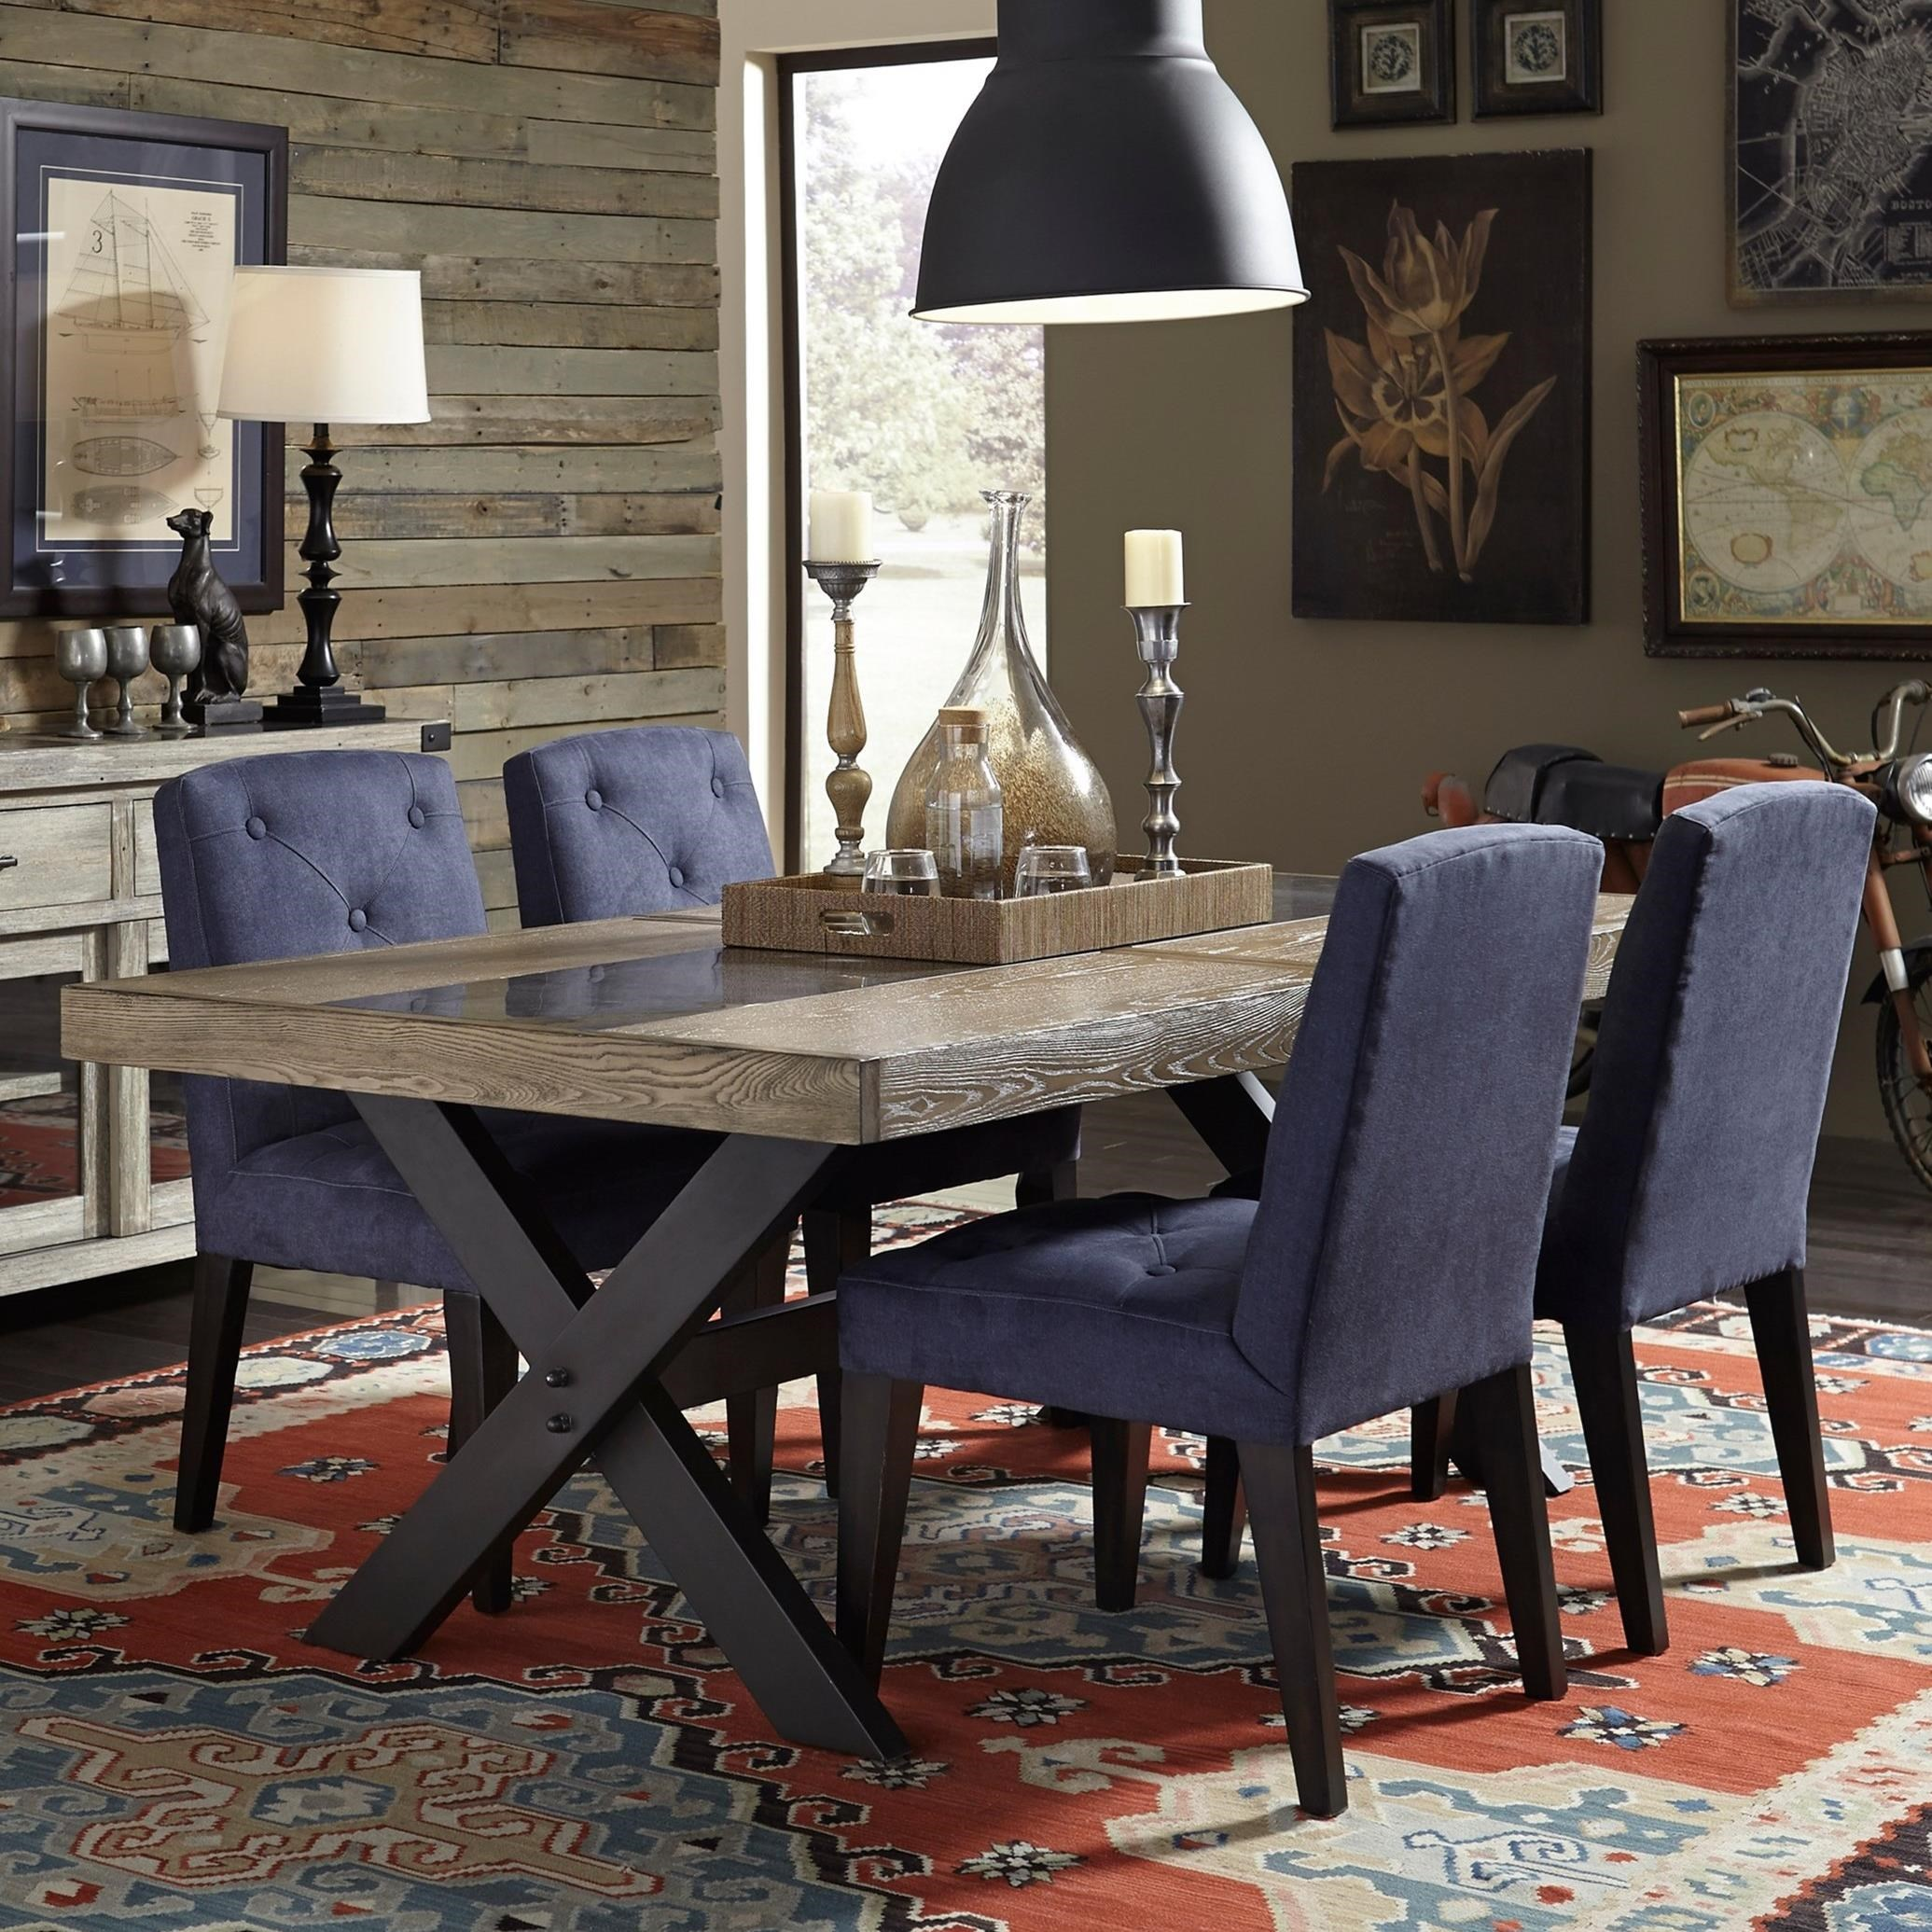 Broyhill Furniture Bedford Avenue 5 Piece Table and Chair Set - Item Number: 8615-502+4x520